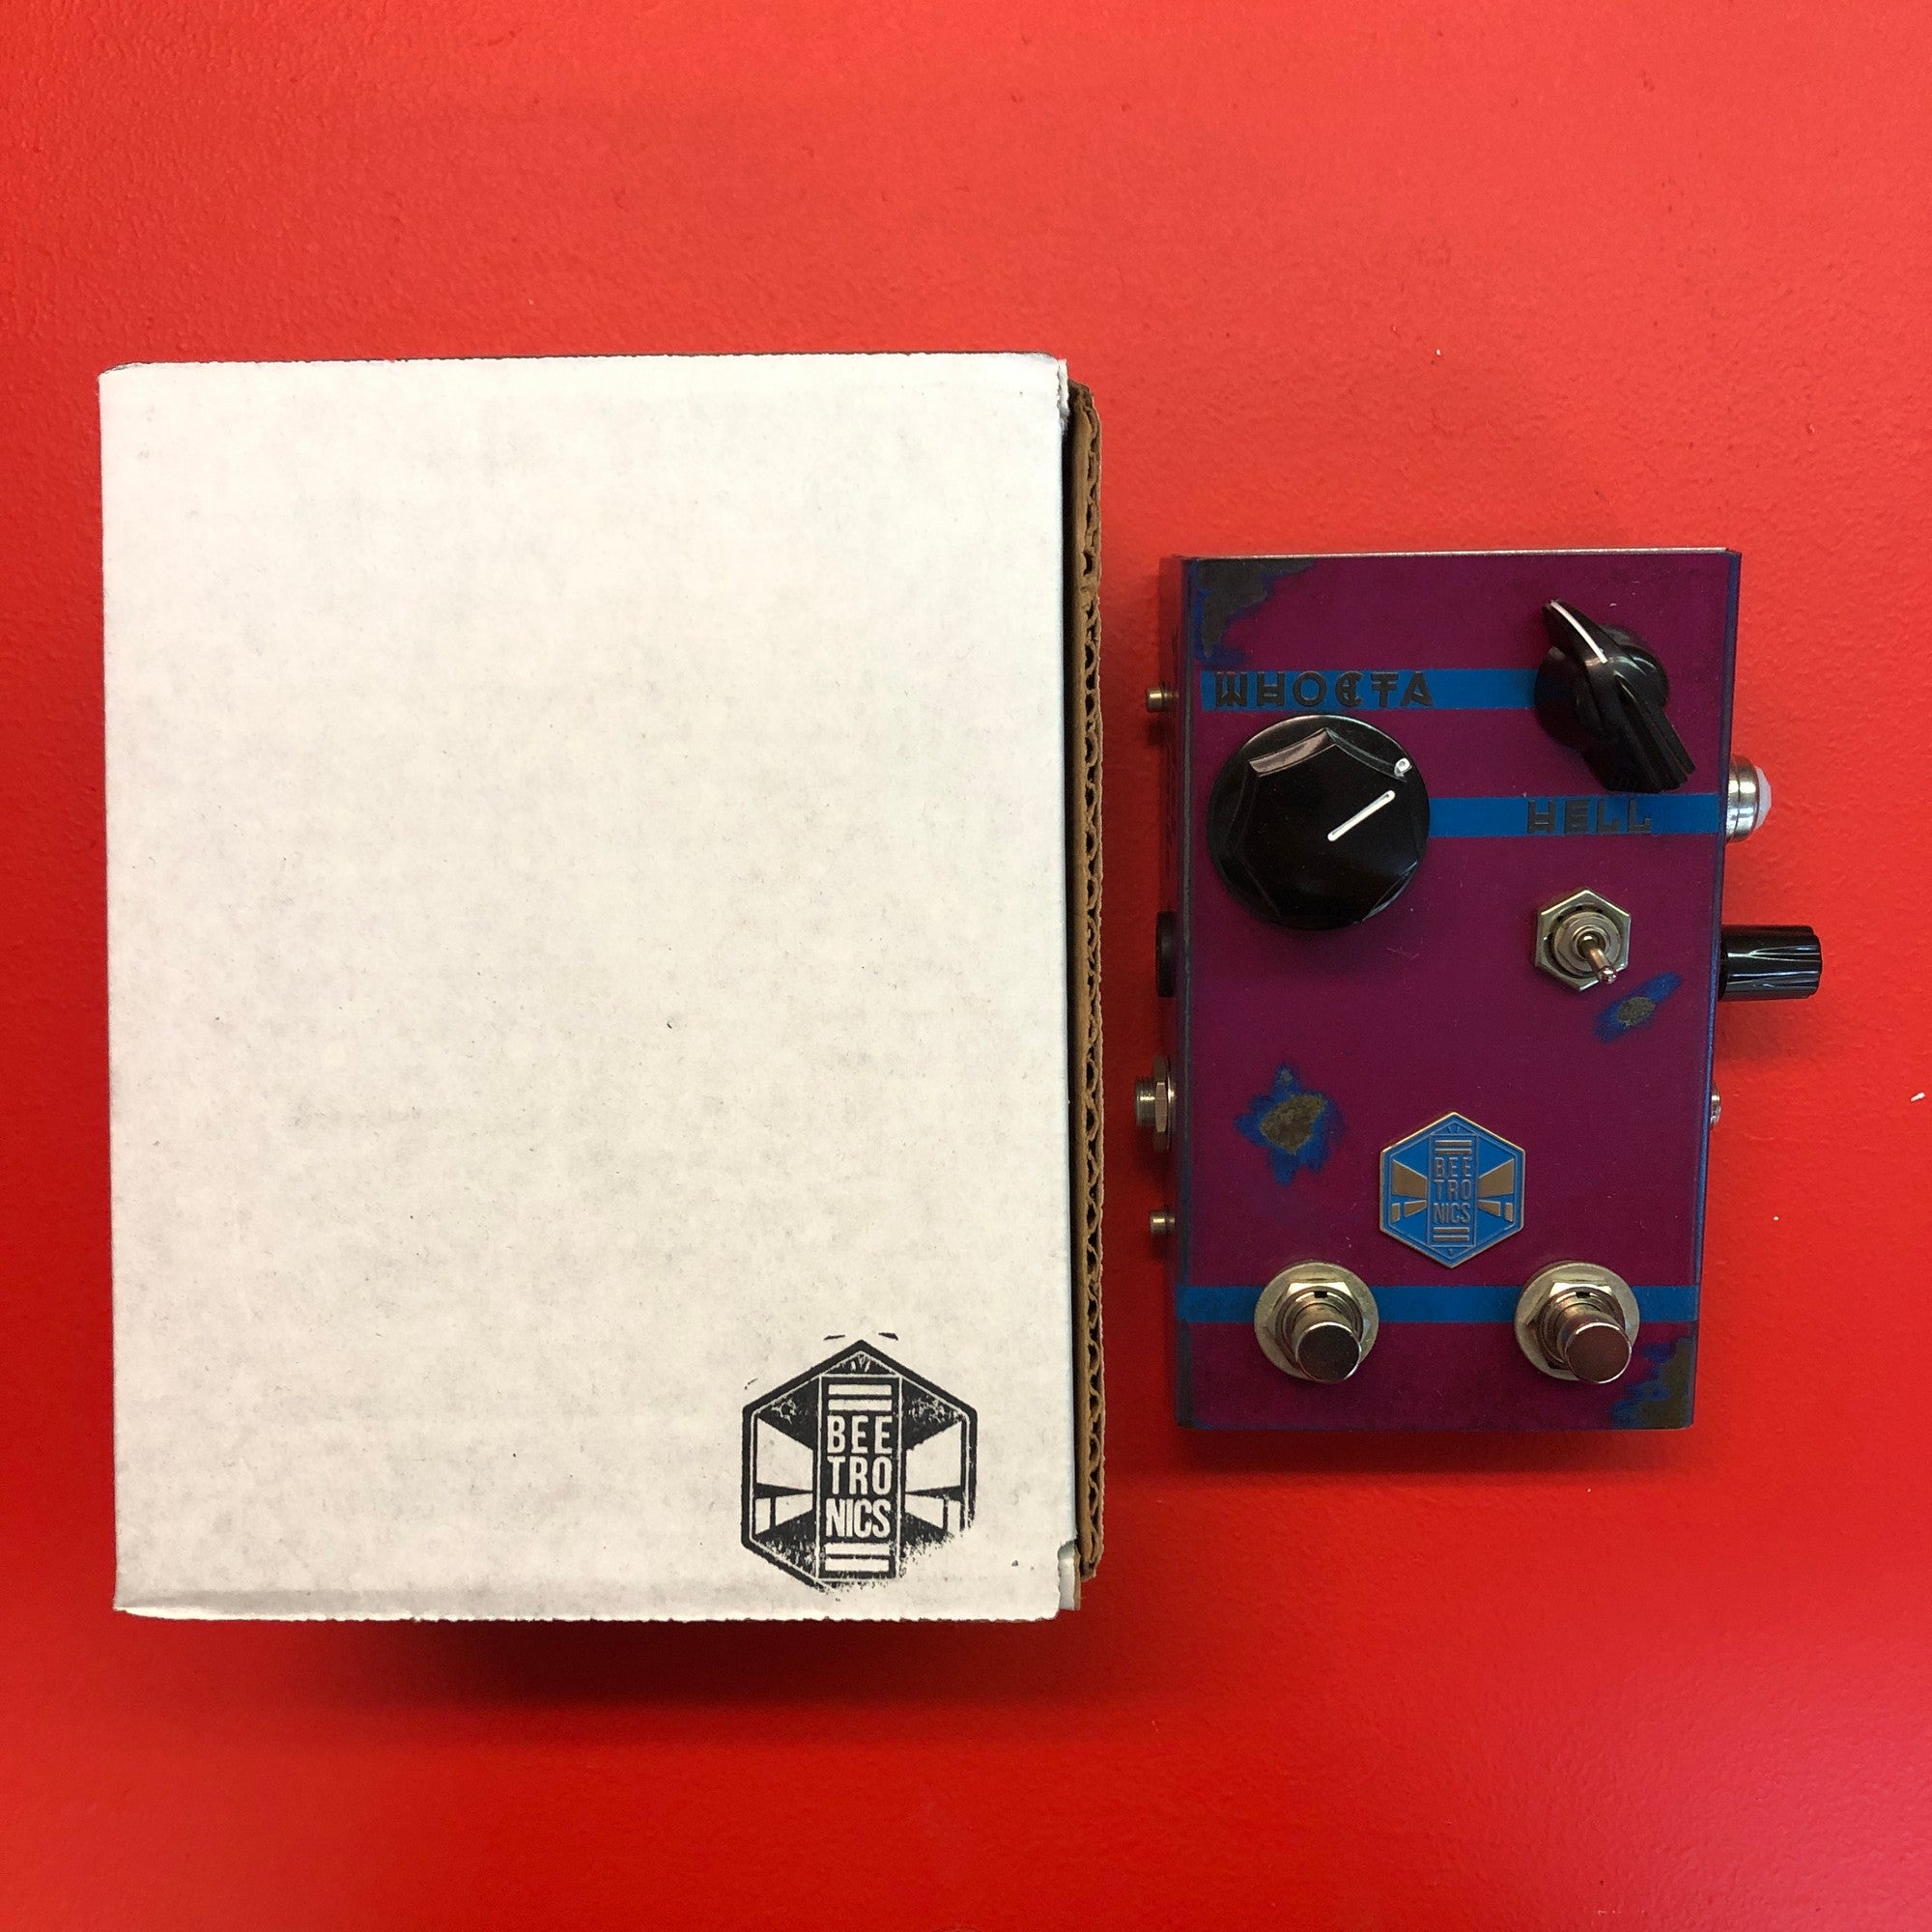 [USED] Beetronics WhoctaHell Low Octave Fuzz, Purple (Pedal Genie Exclusive)